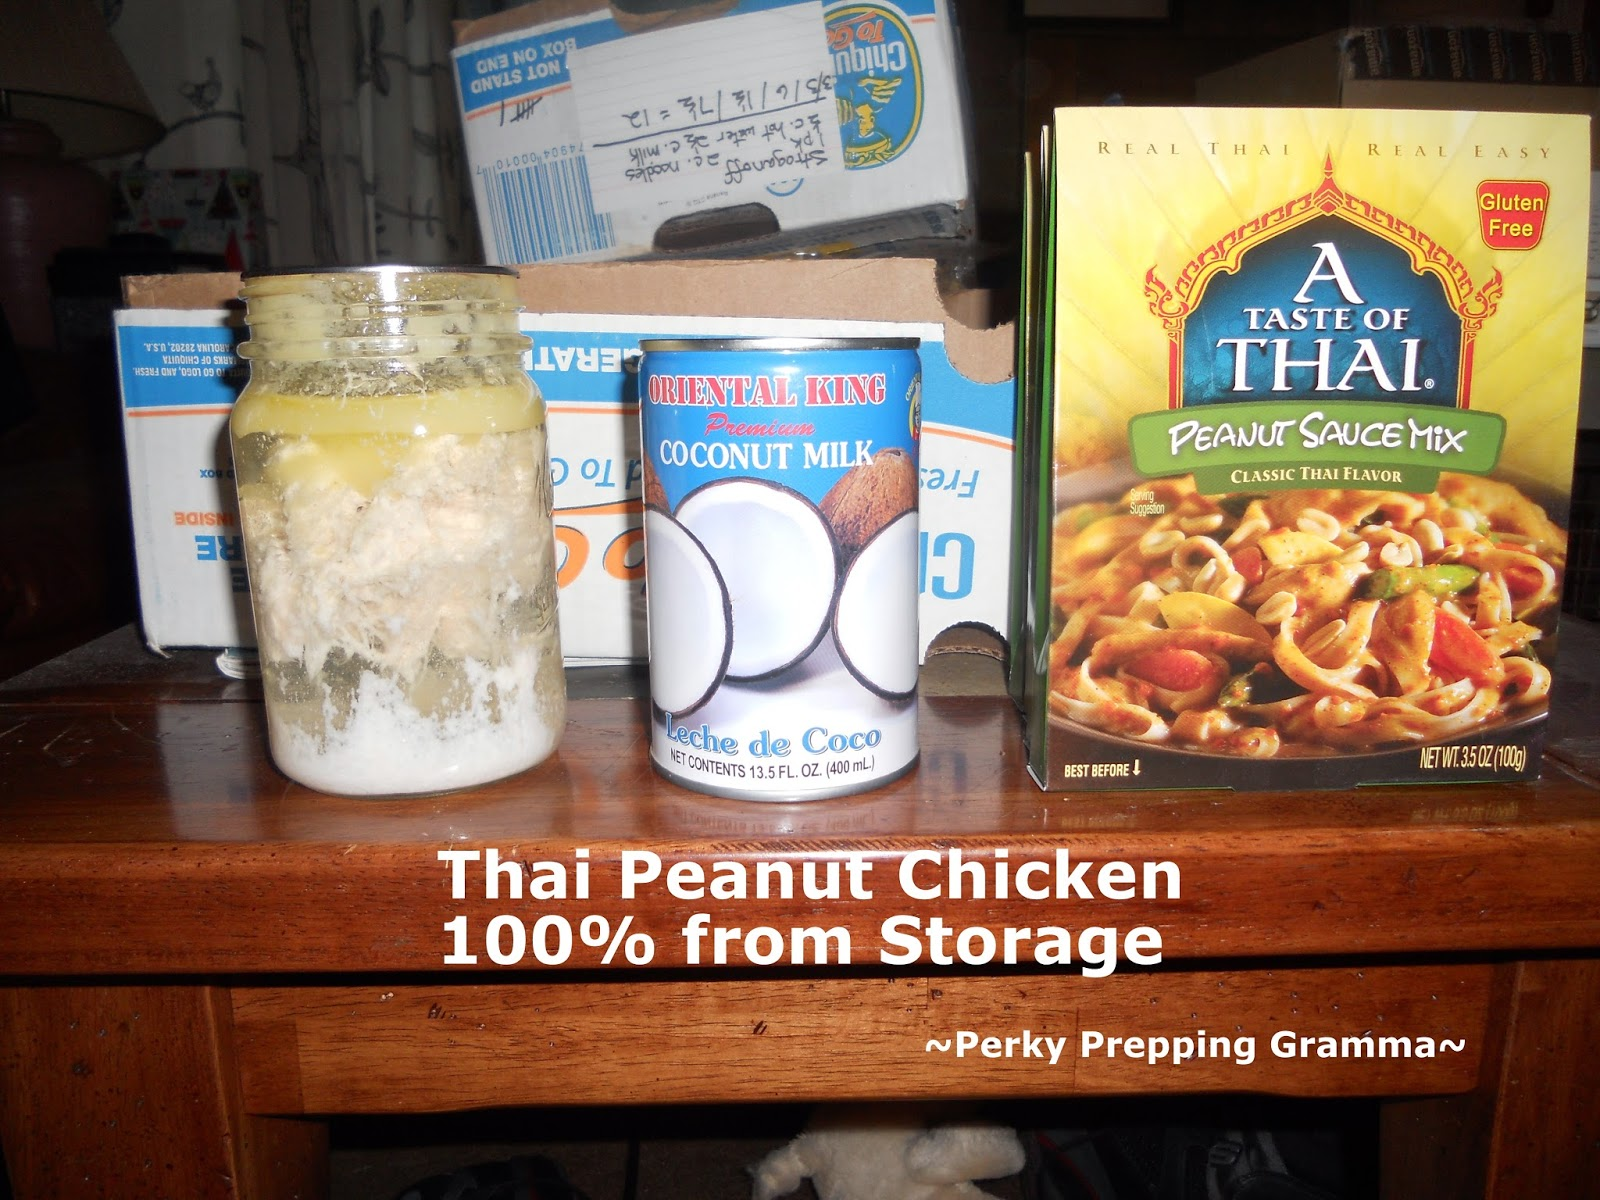 A Taste Of Thai Coconut Milk perky prepping gramma: 144 meals in a box (recipe 100% from storage)